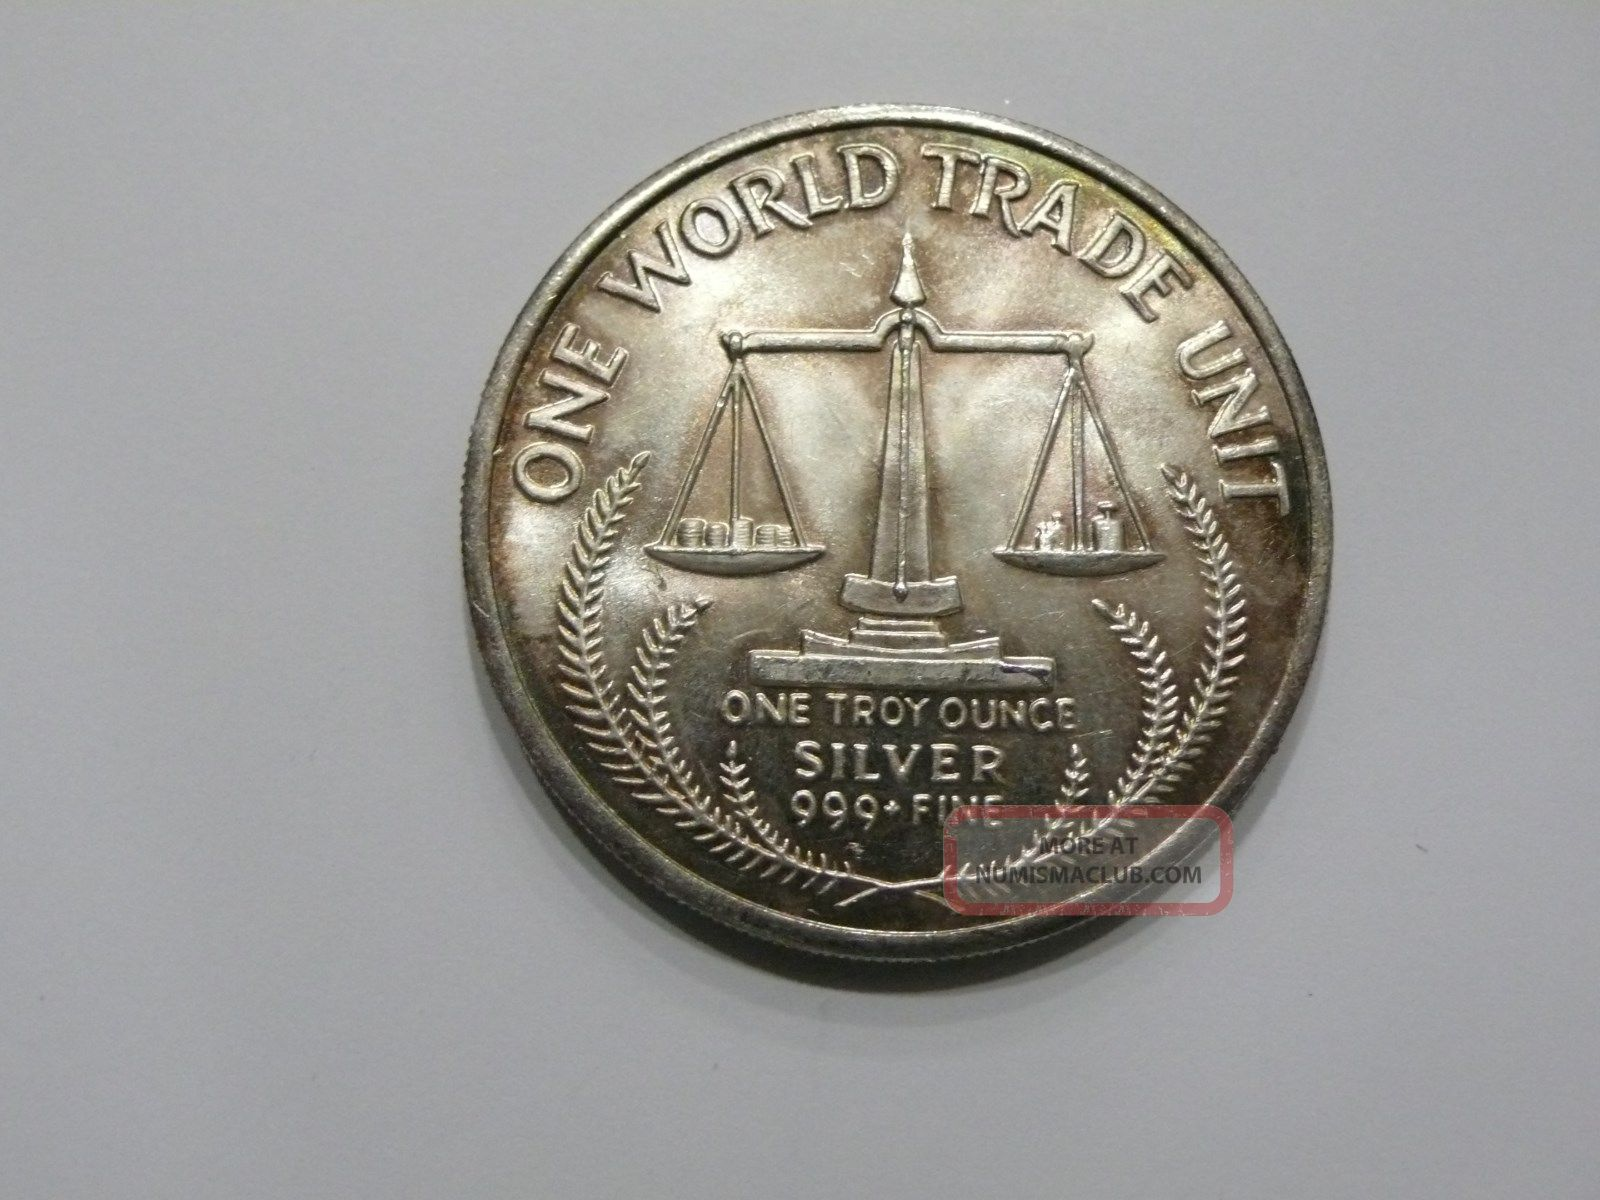 Silver World Trade Unit 1984 1 Troy Ounce